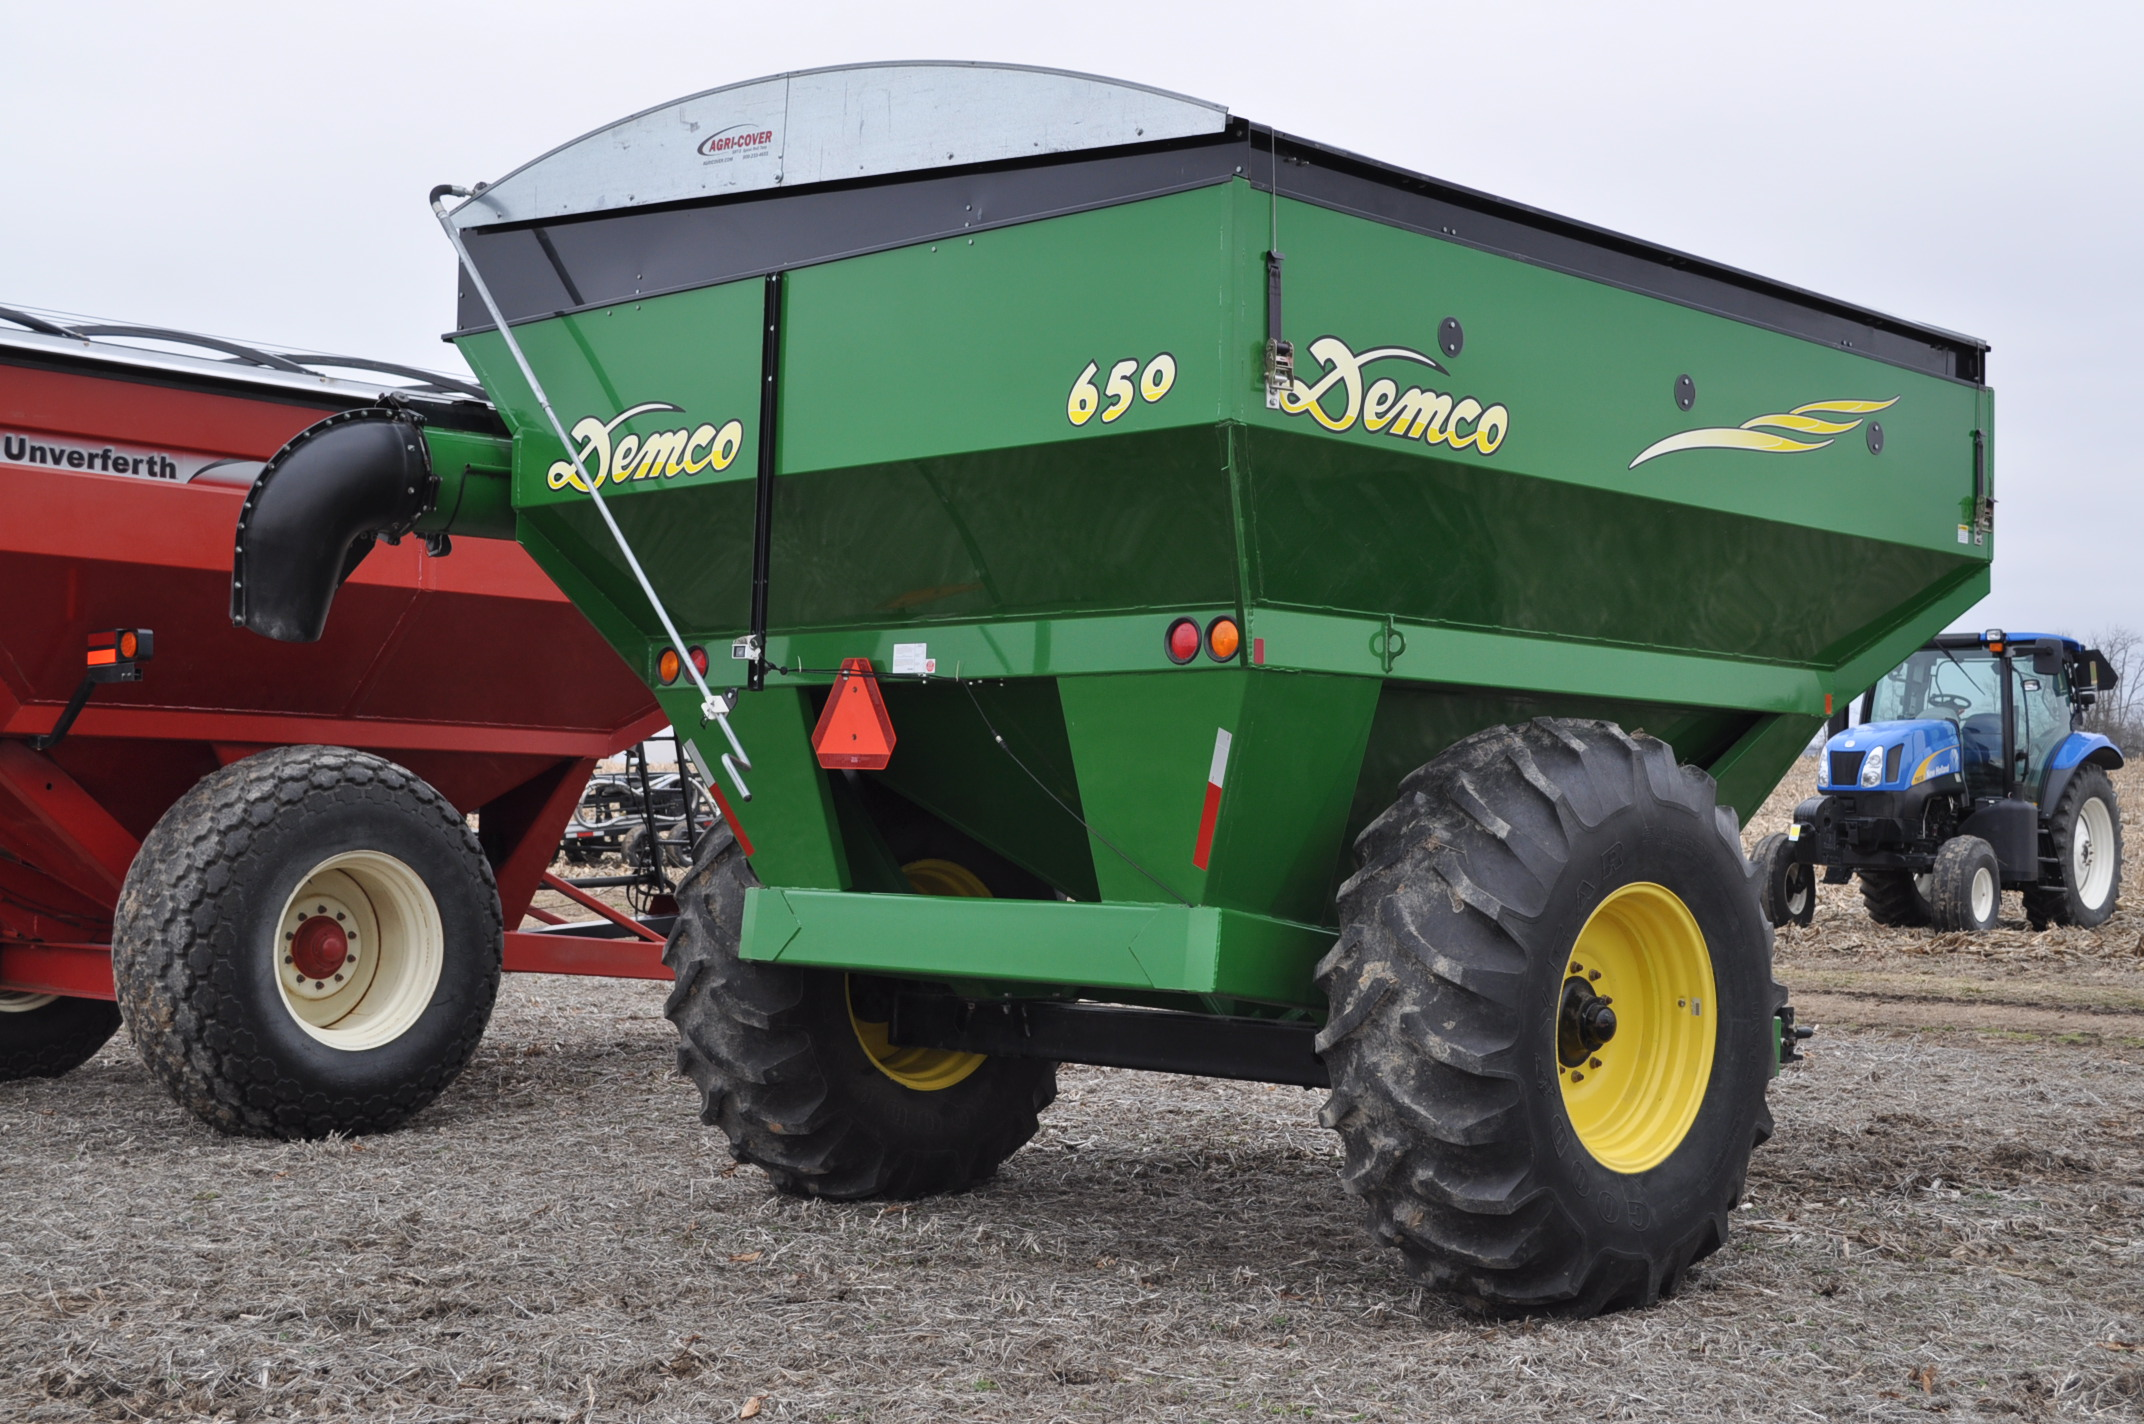 Demco 650 grain cart, 24.5-32 tires, roll tarp, hyd swing spout, Digistar scales, corner auger, rear - Image 3 of 12